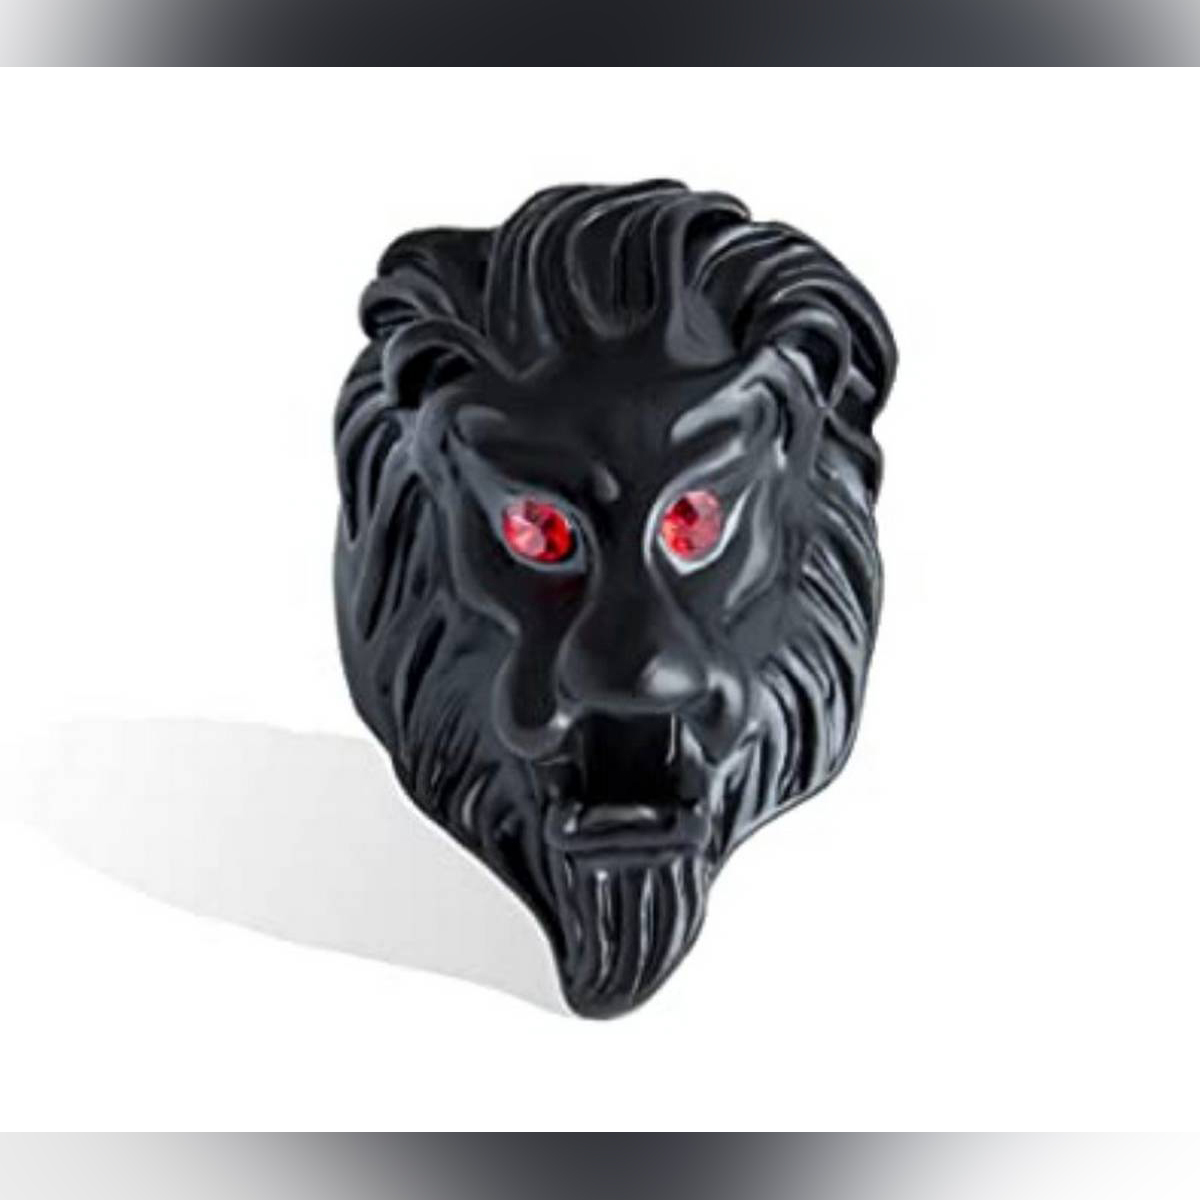 New Punk Titanium Steel Rings Bulldog Lion Head Animal Shaped Rings Fine Jewelry Gifts For Men